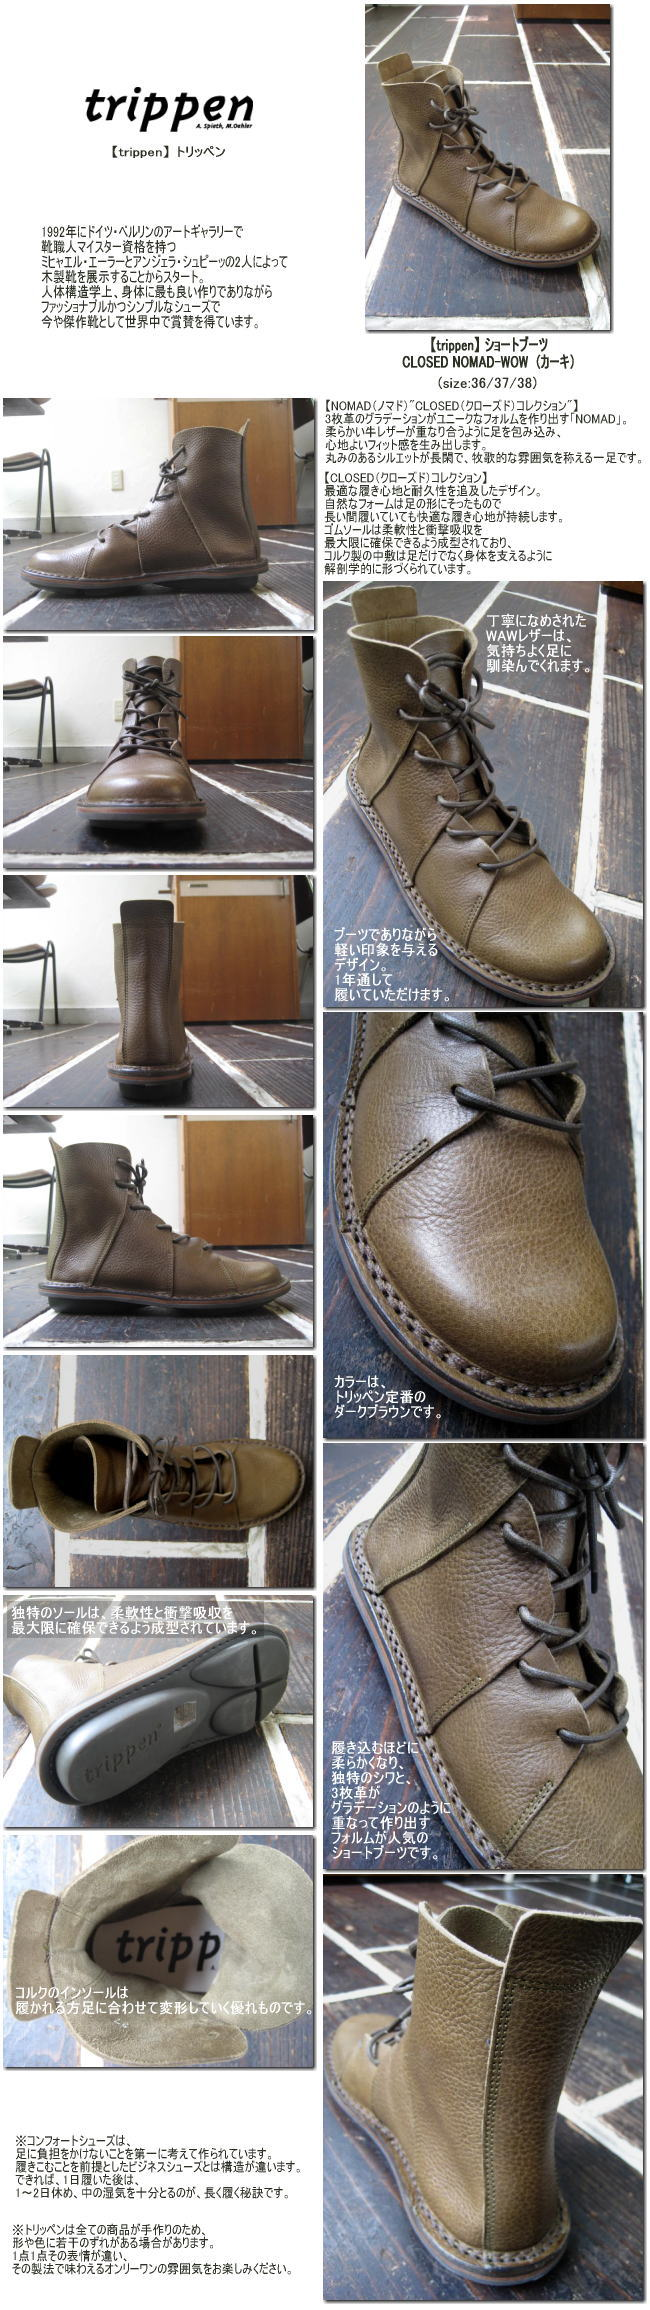 【trippen】 トリッペン CLOSED NOMAD-WOW (カーキ) size 36/37/38